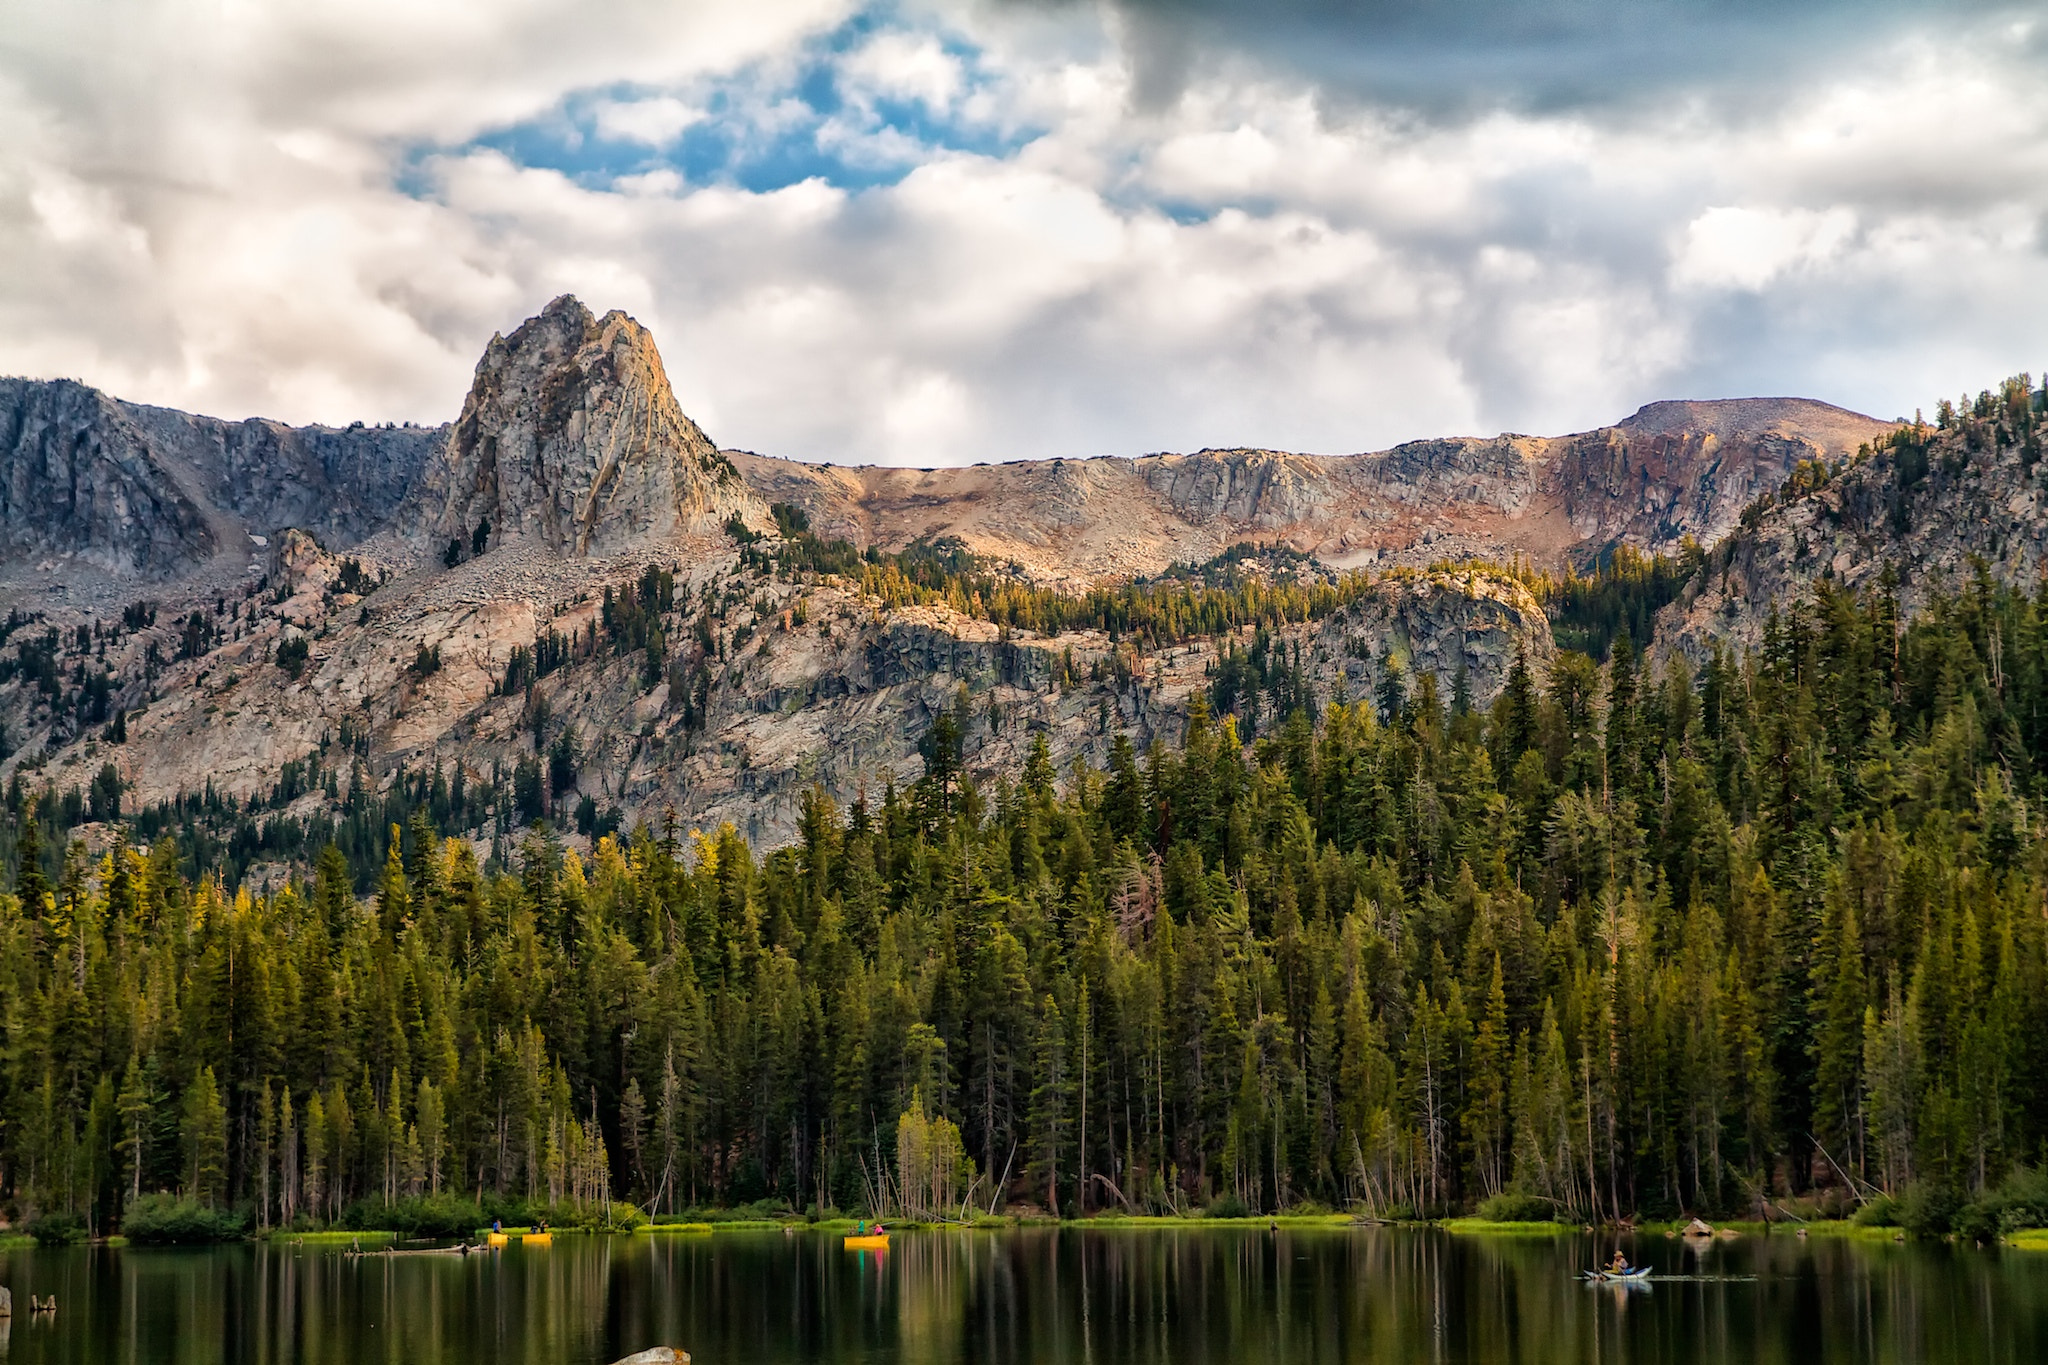 Photograph Fishing Under the Peak by Todd Olthoff on 500px